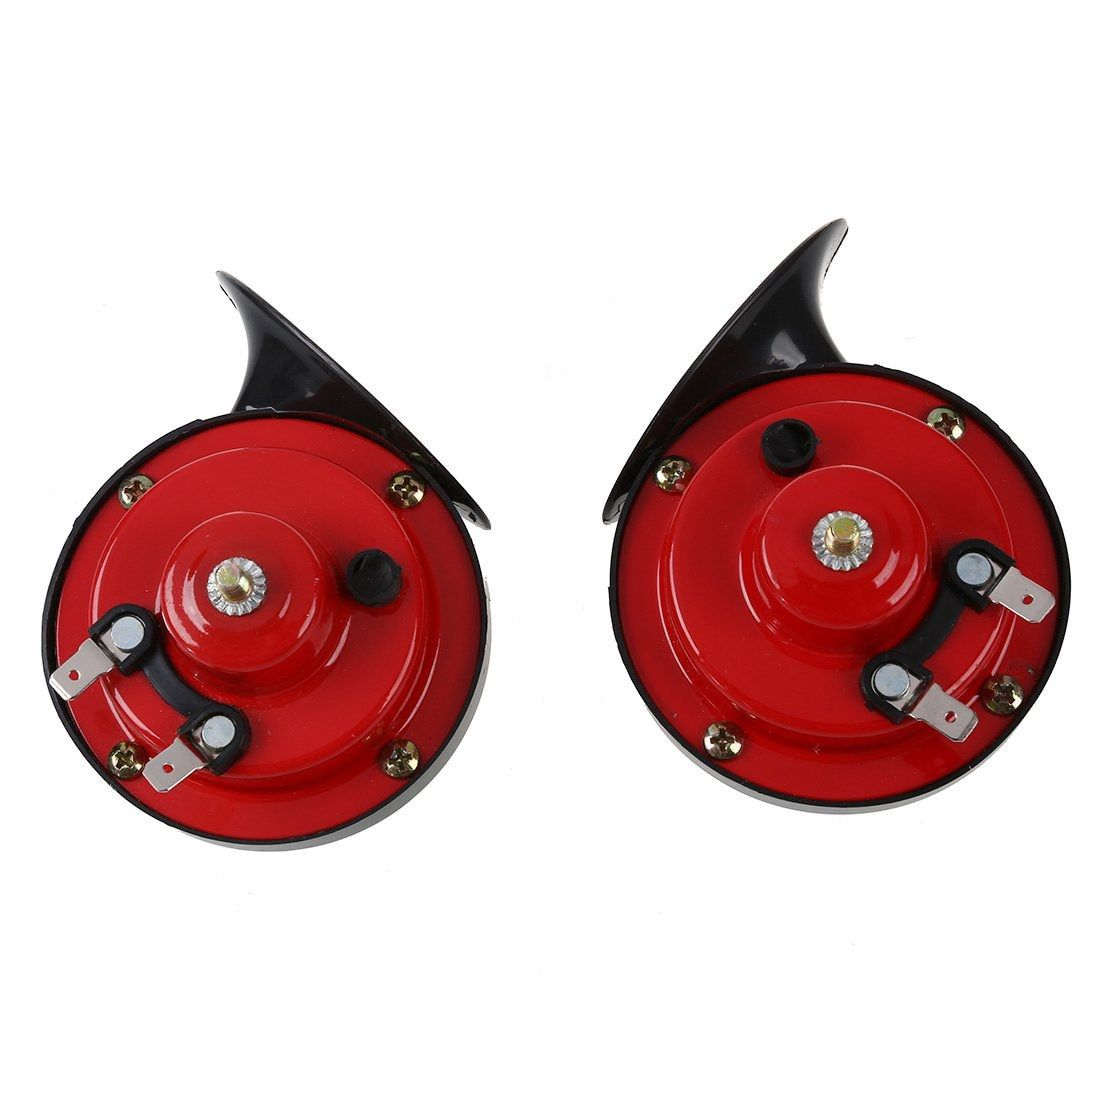 Universal 1 Sets All 12V Car Air Horm Loud Car Dual-tone Snail Electric Siren on Car Special Signals Car Styling Red